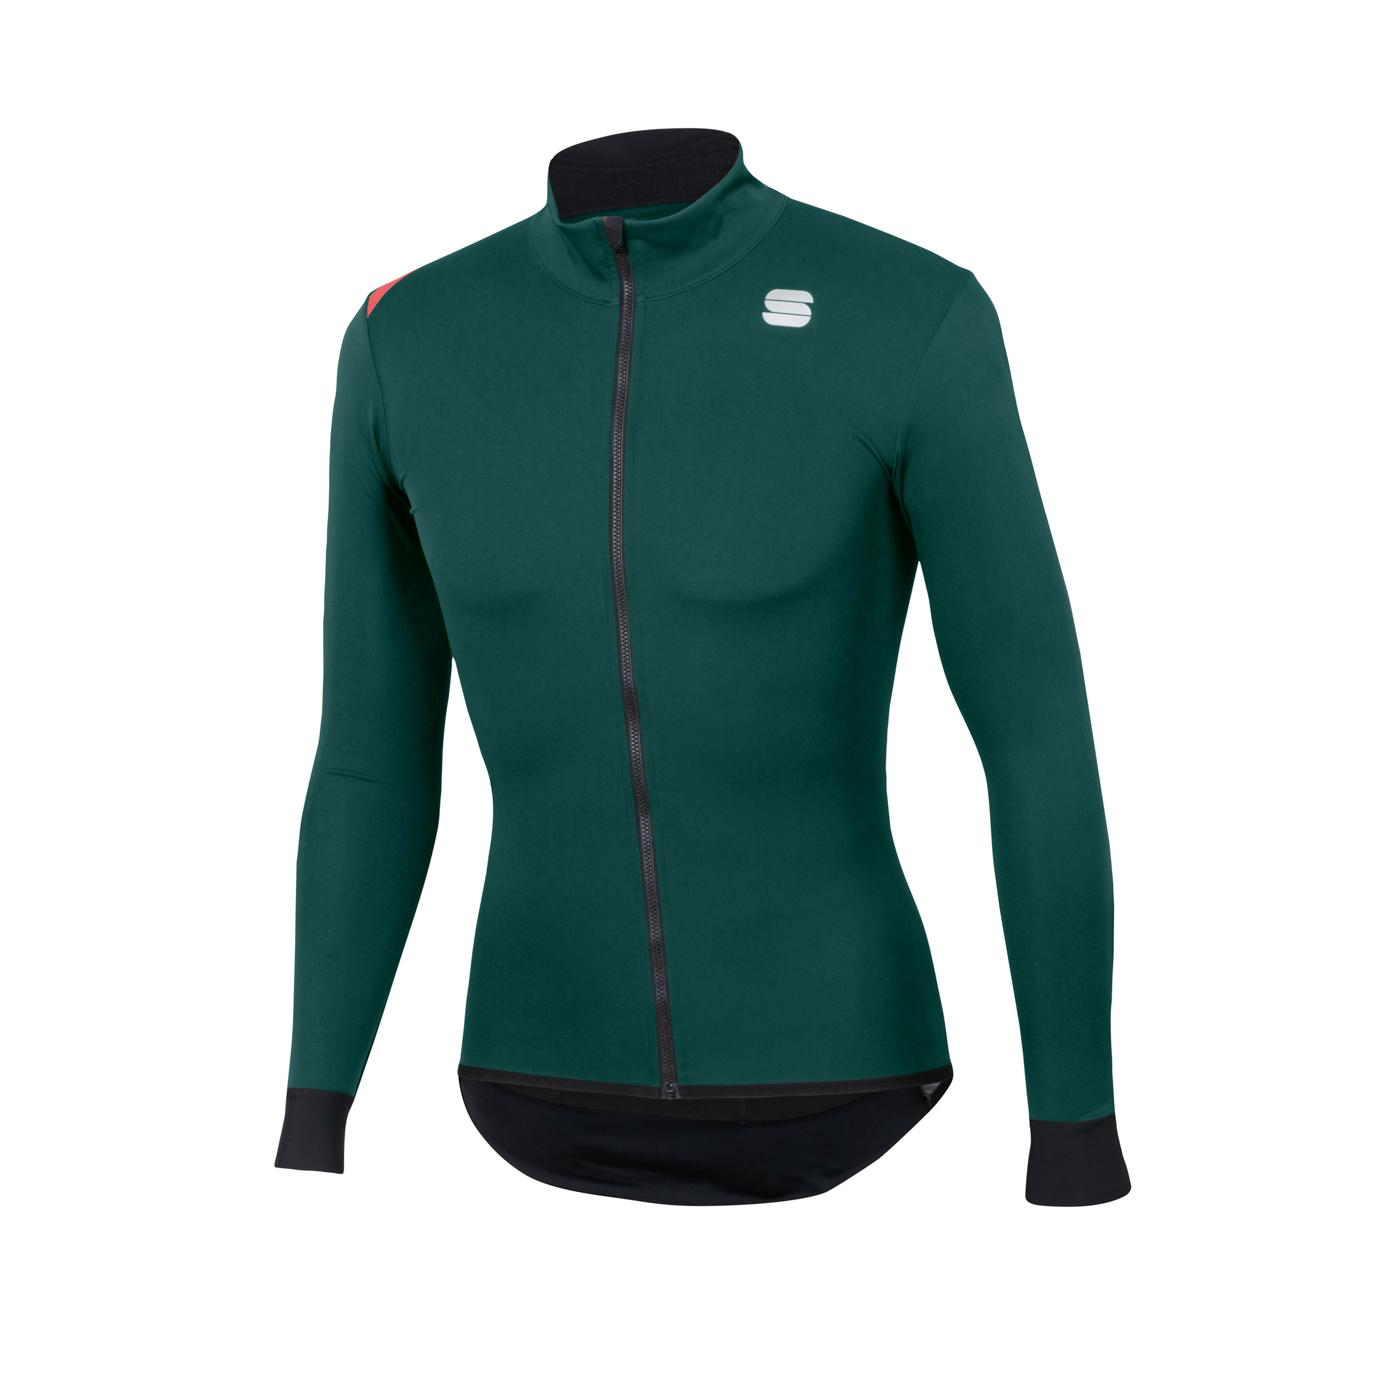 Sportful Fietsjack Lange mouwen Zeer sterk waterafstotend voor Heren Groen - SF Fiandre Light No Rain Jacket-Sea Moss